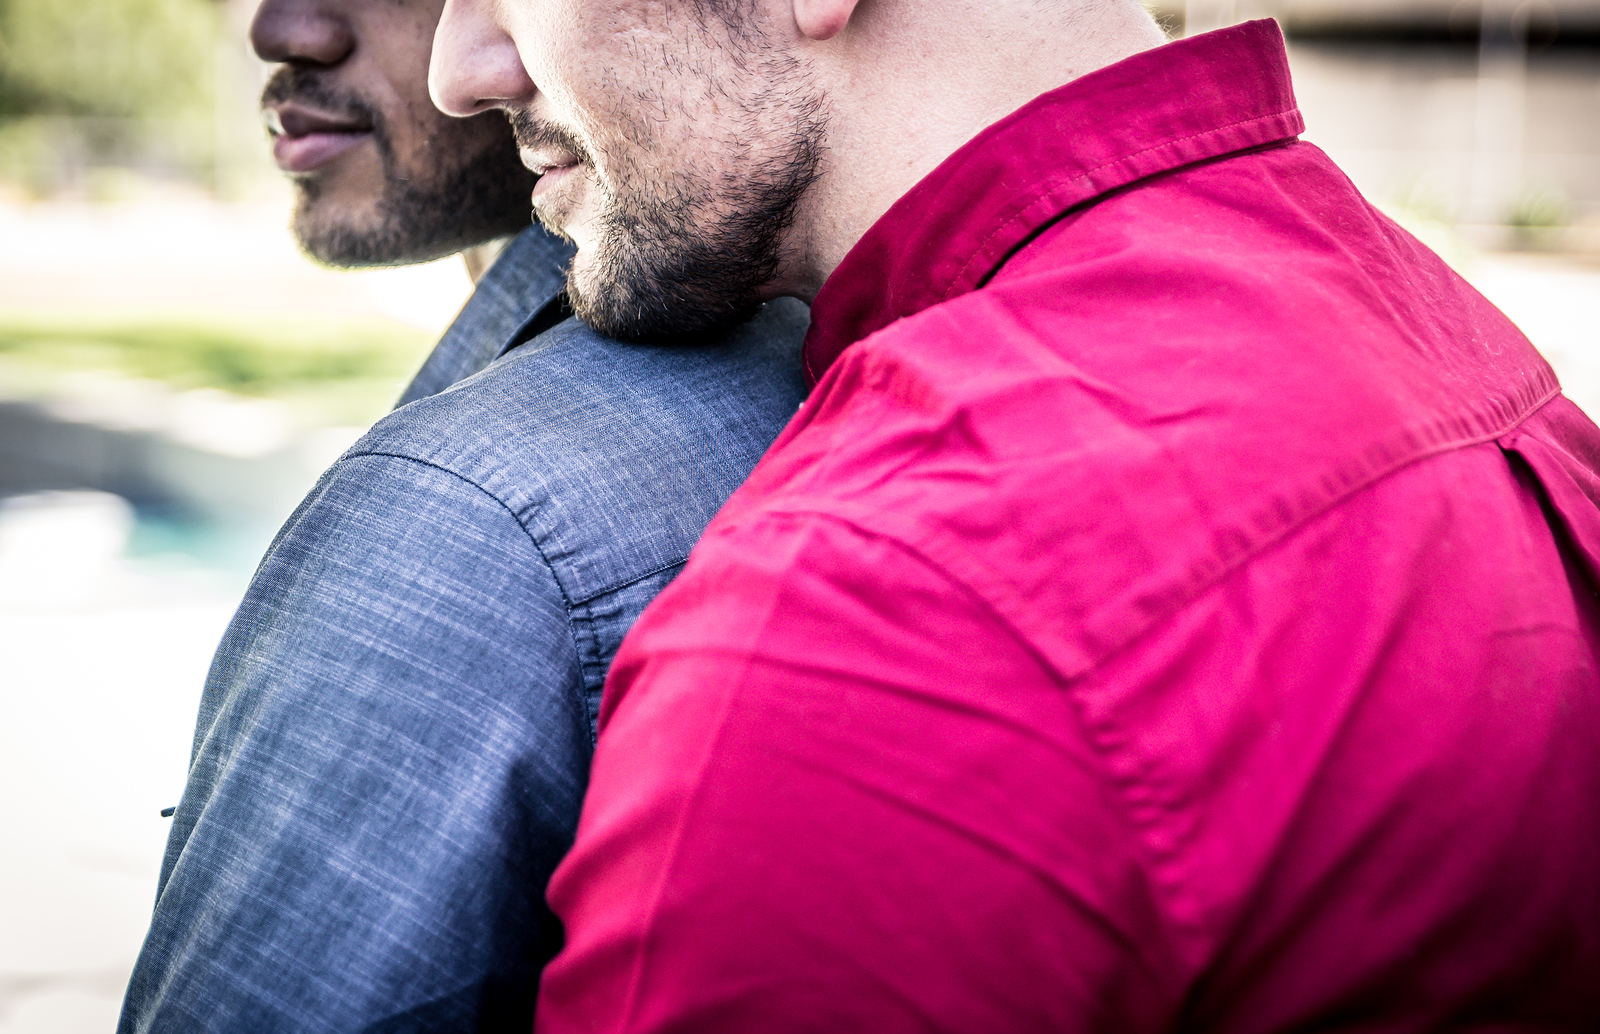 Black and White Gay Couples Embrace from